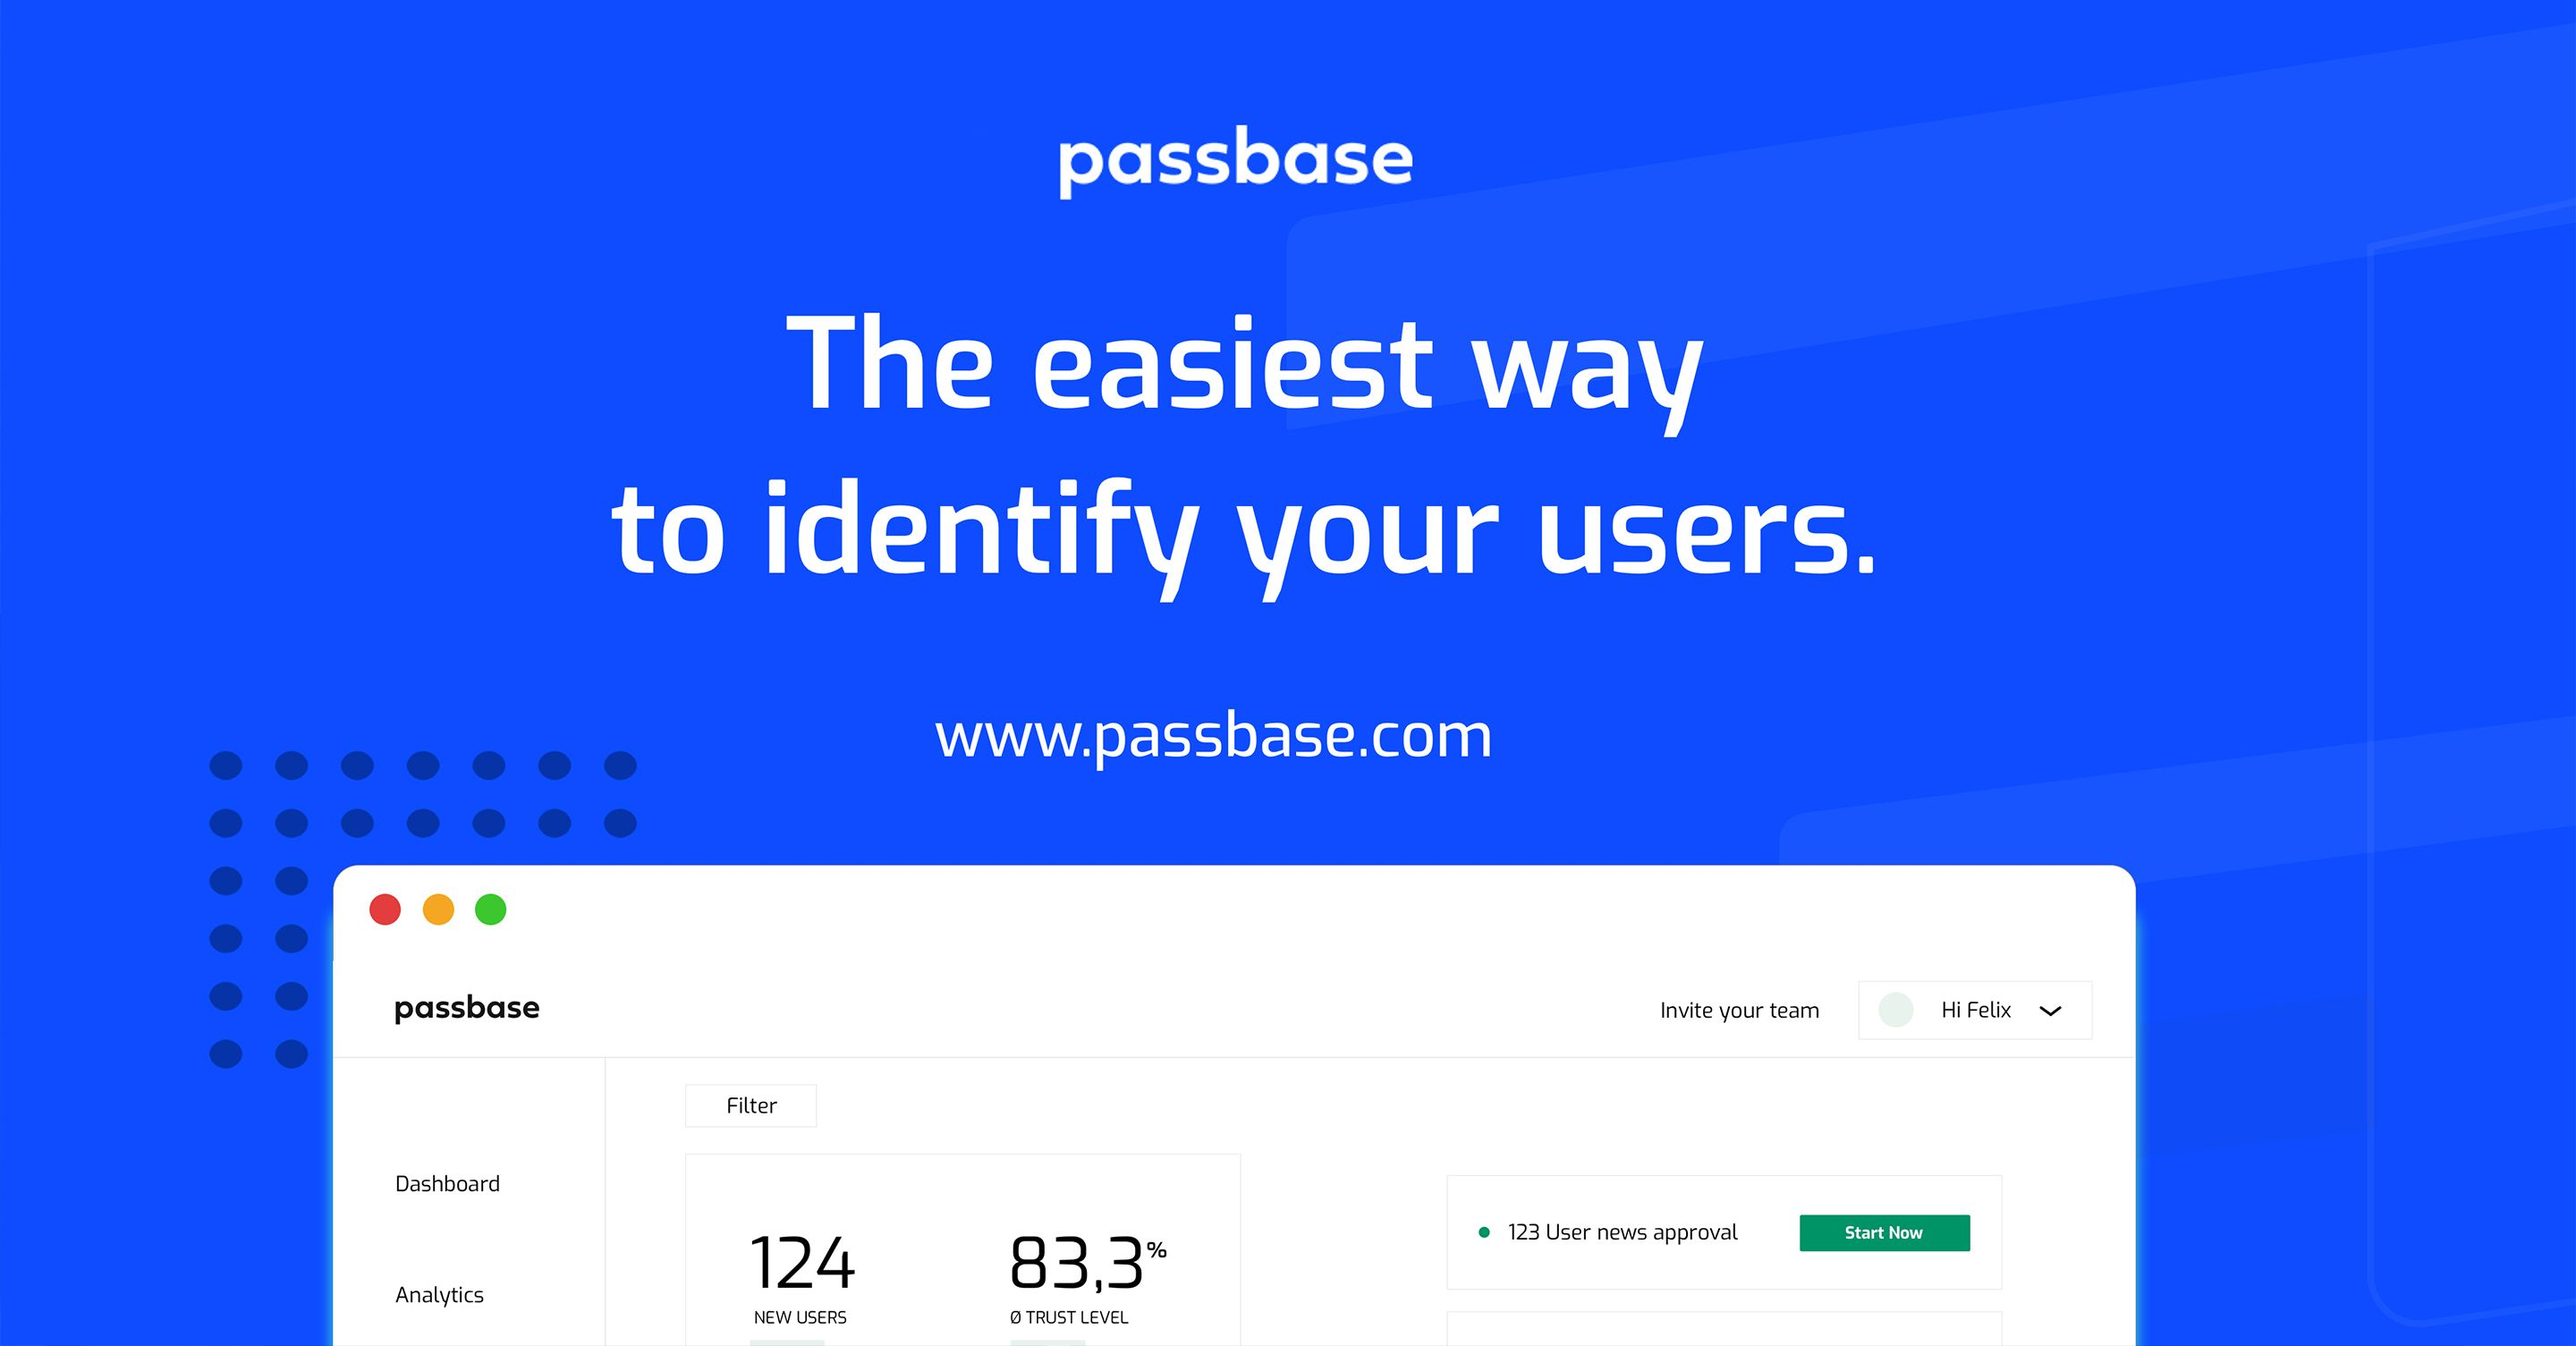 Passbase offers ID verifaction for over 150 countries. Read more passbase.com